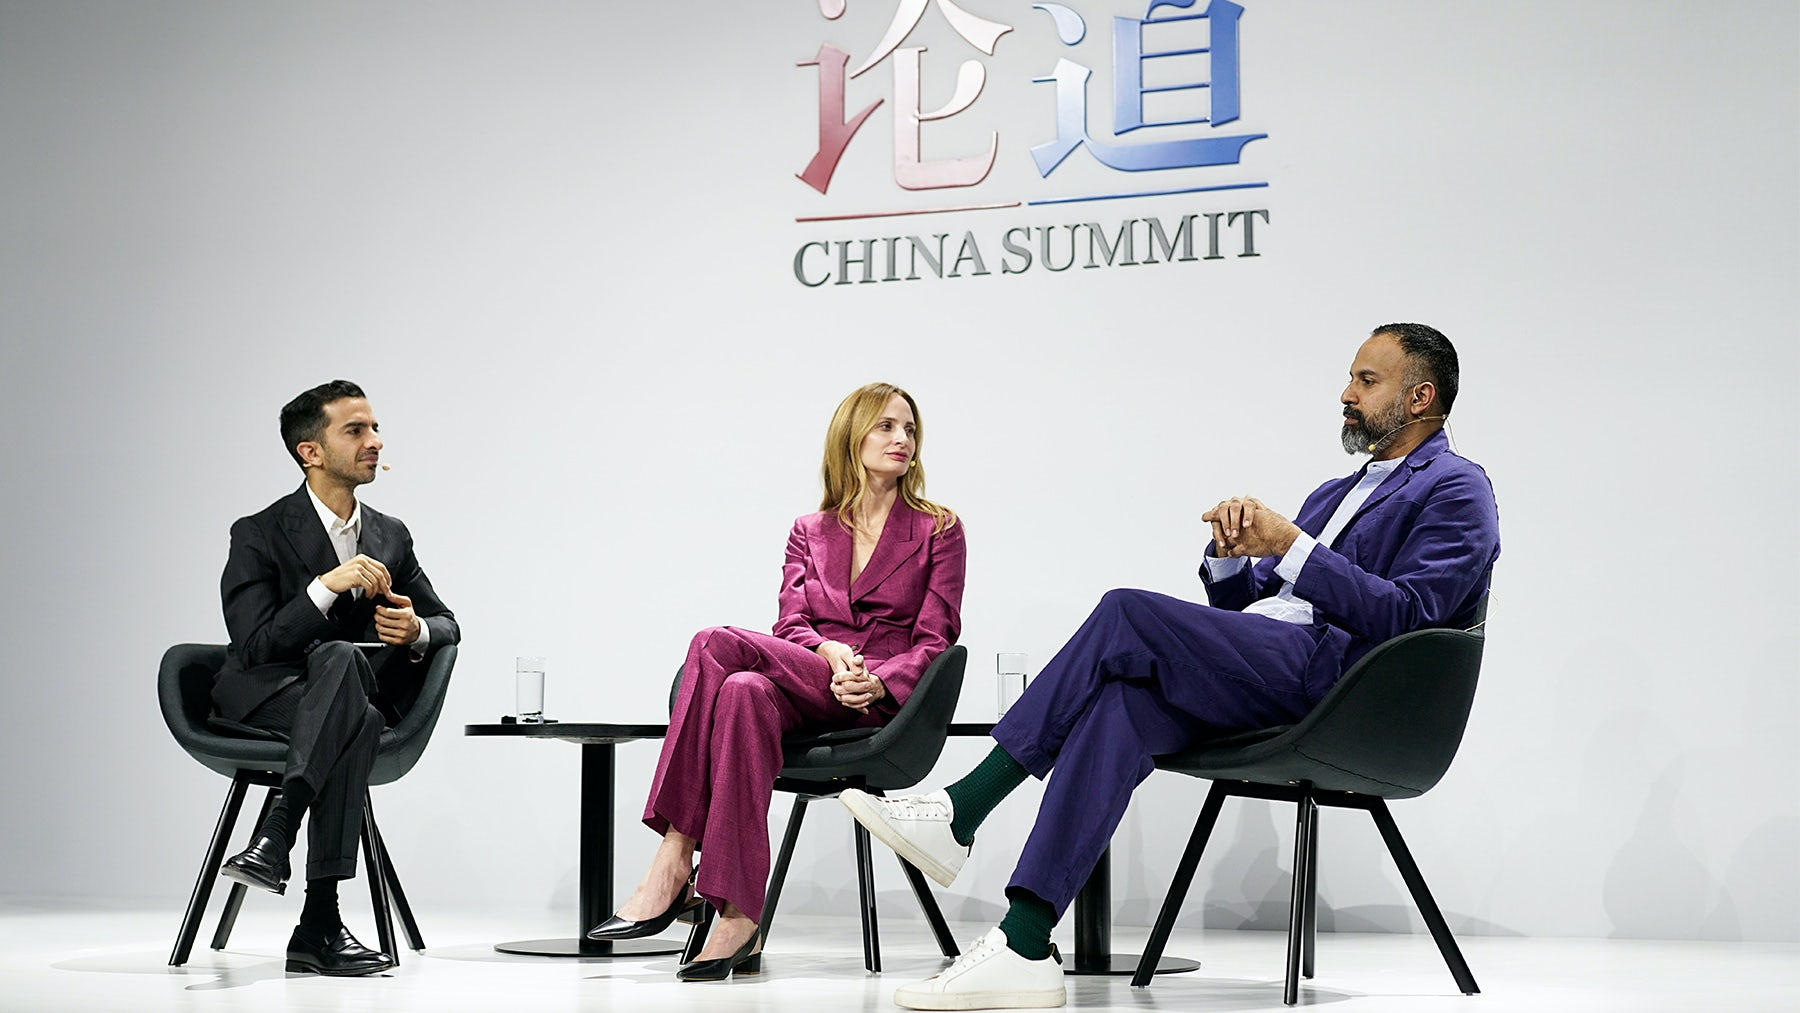 Imran Amed, founder and editor-in-chief of The Business of Fashion, Lauren Santo Domingo, co-founder and chief brand officer, Moda Operandi, Ganesh Srivats, chief executive, Moda Operandi | Source: Getty Images for The Business of Fashion